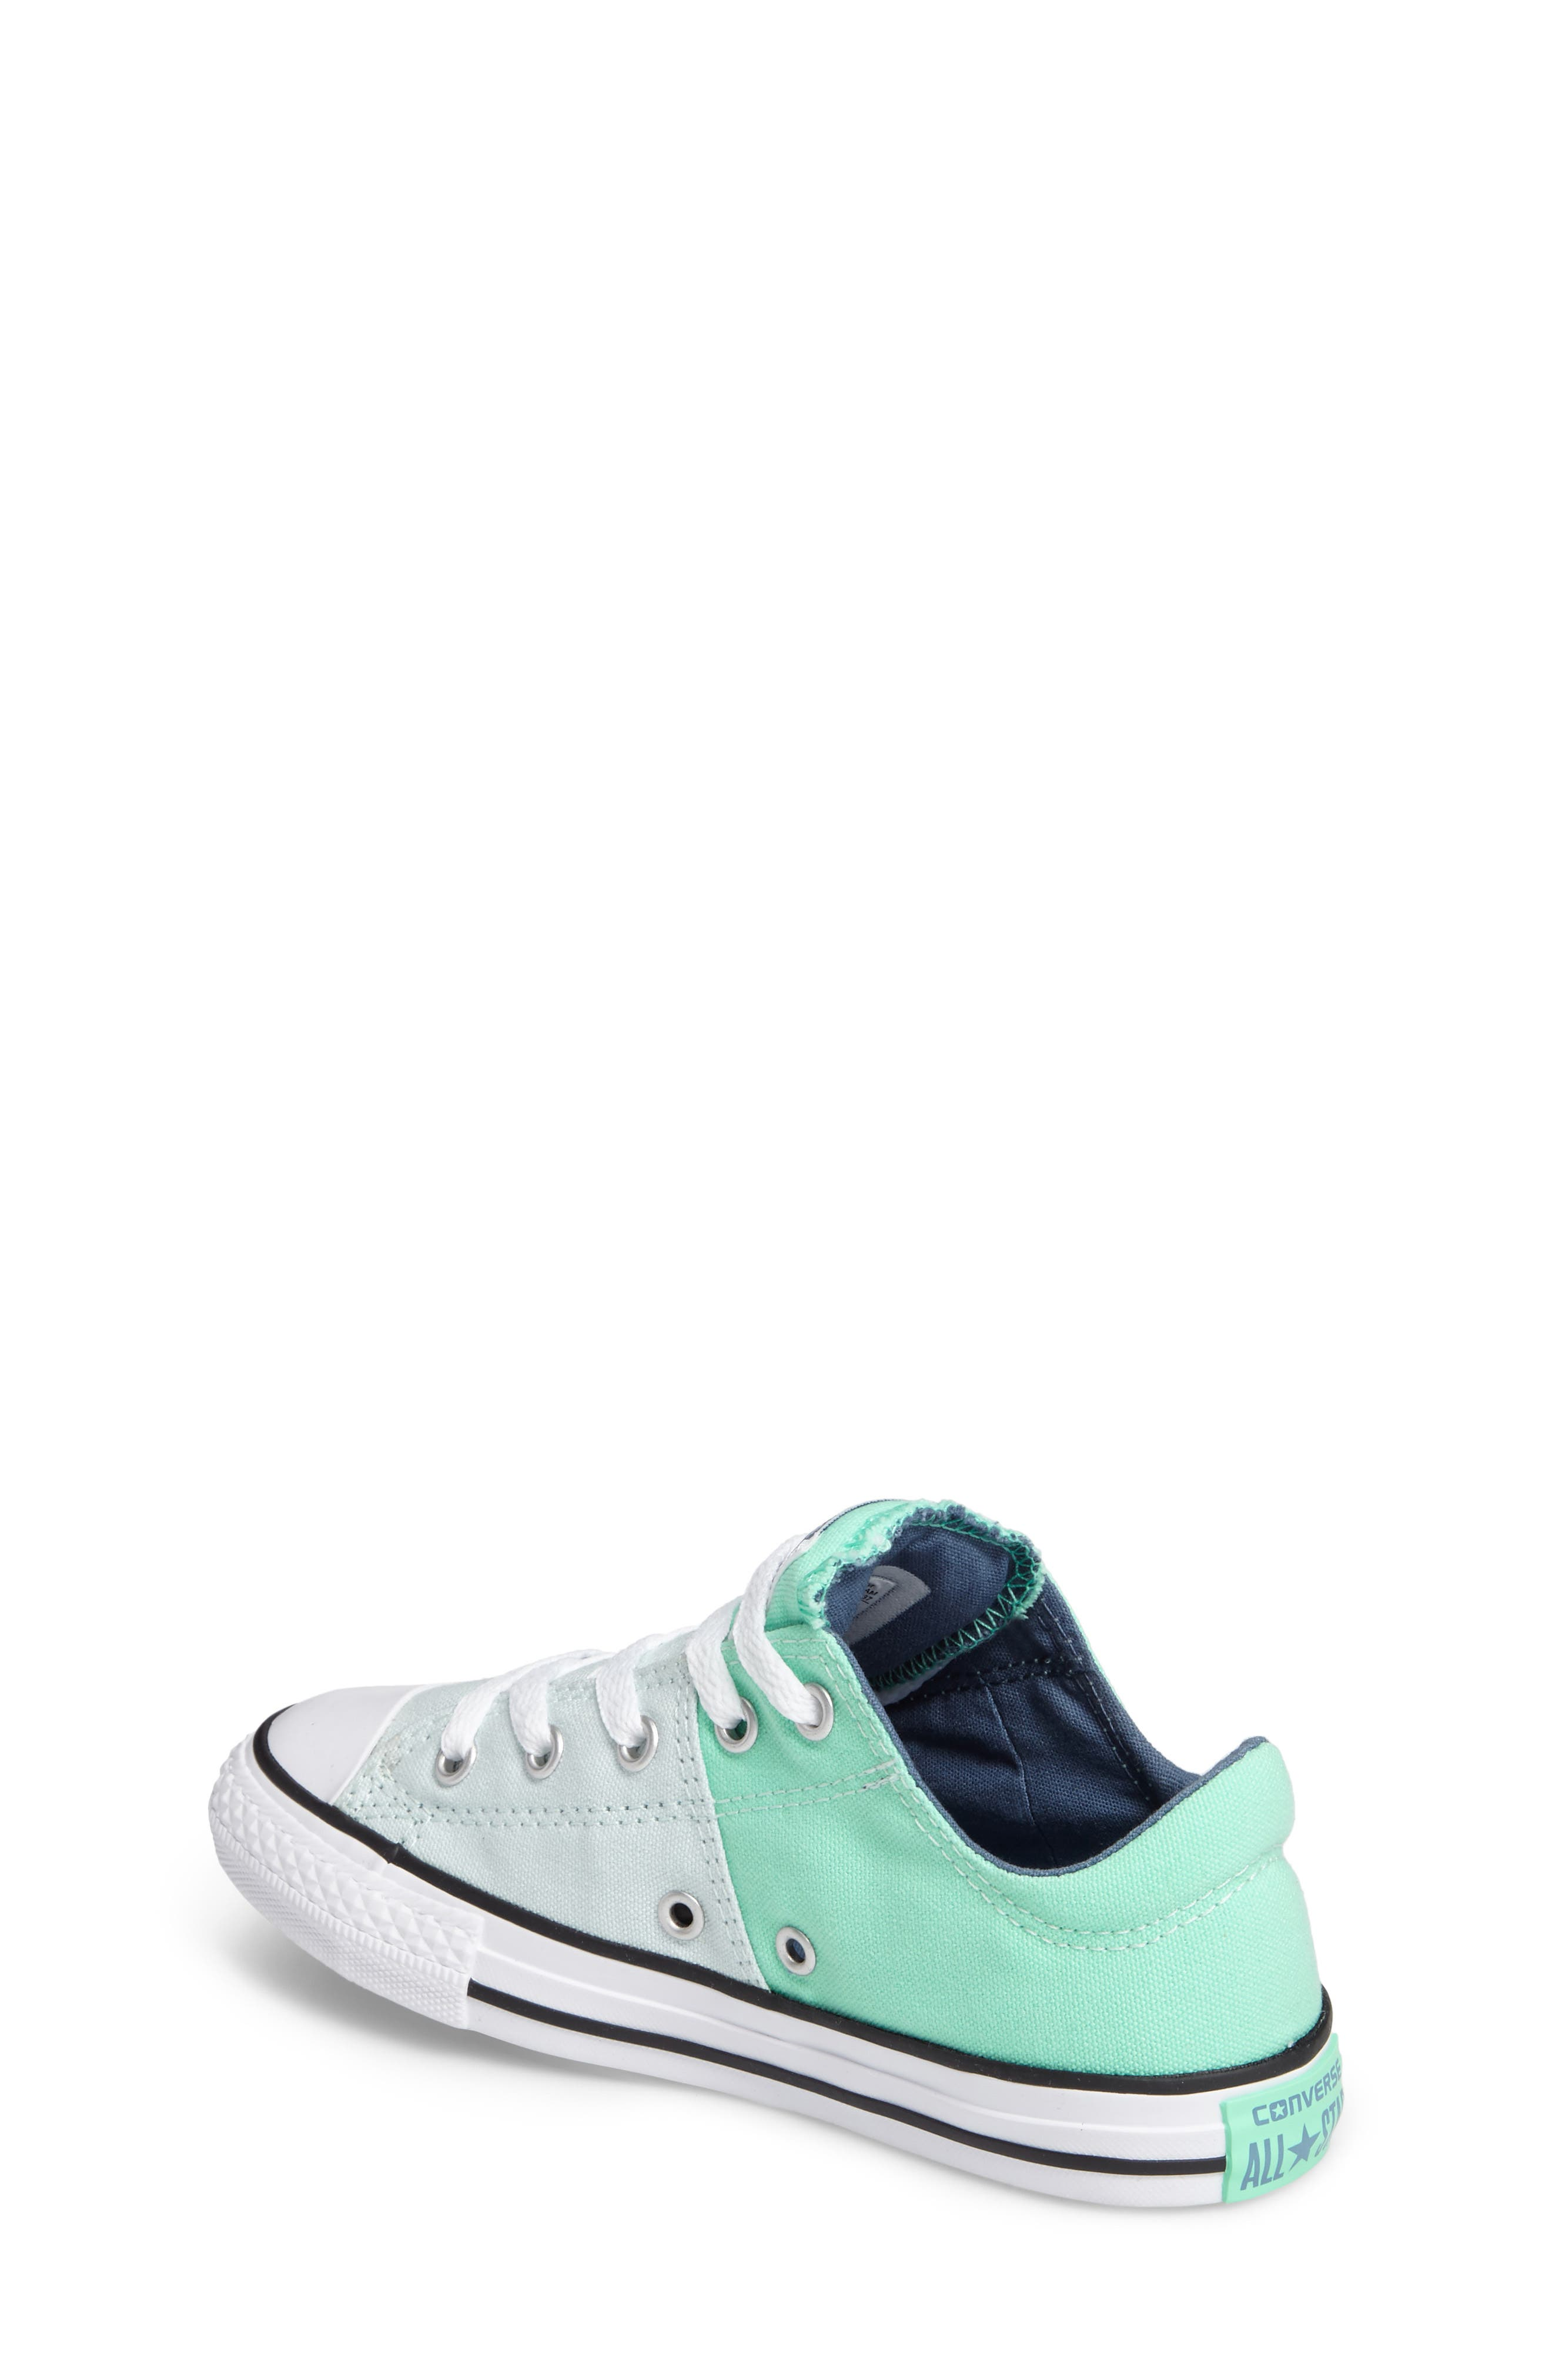 Chuck Taylor<sup>®</sup> All Star<sup>®</sup> Madison Low Top Sneaker,                             Alternate thumbnail 11, color,